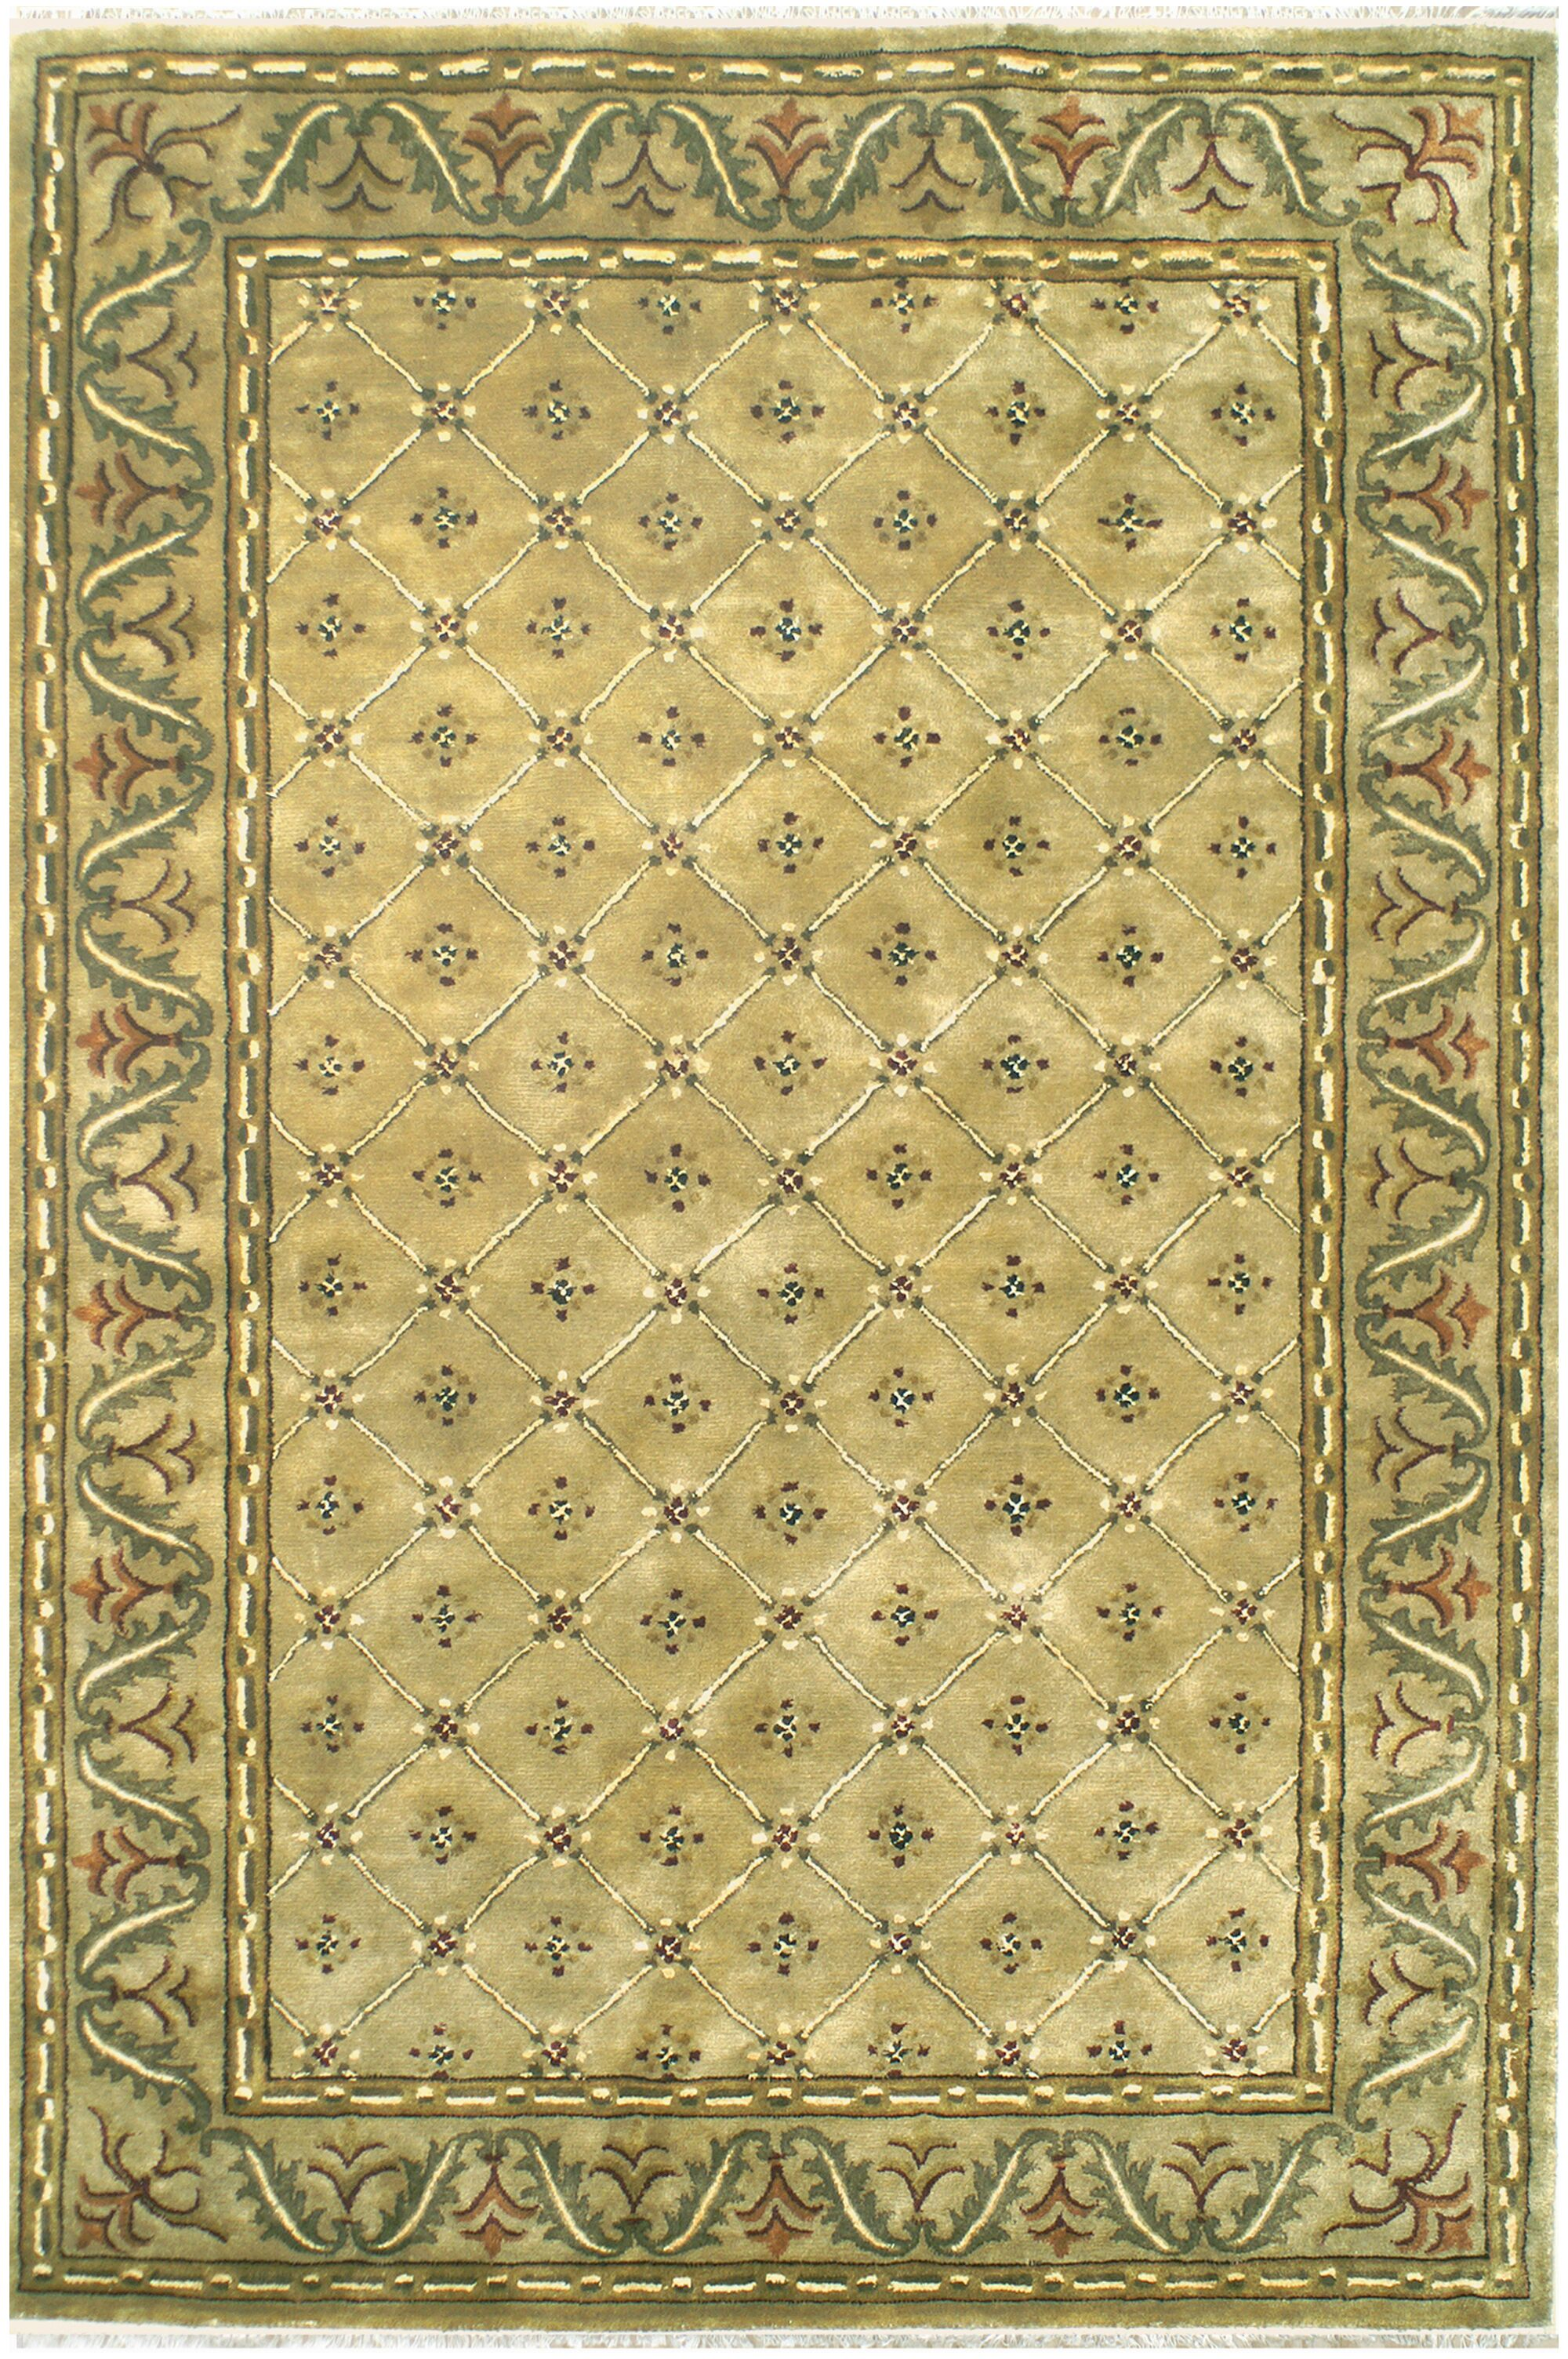 English Hand-Tufted Beige Area Rug Rug Size: 9'6